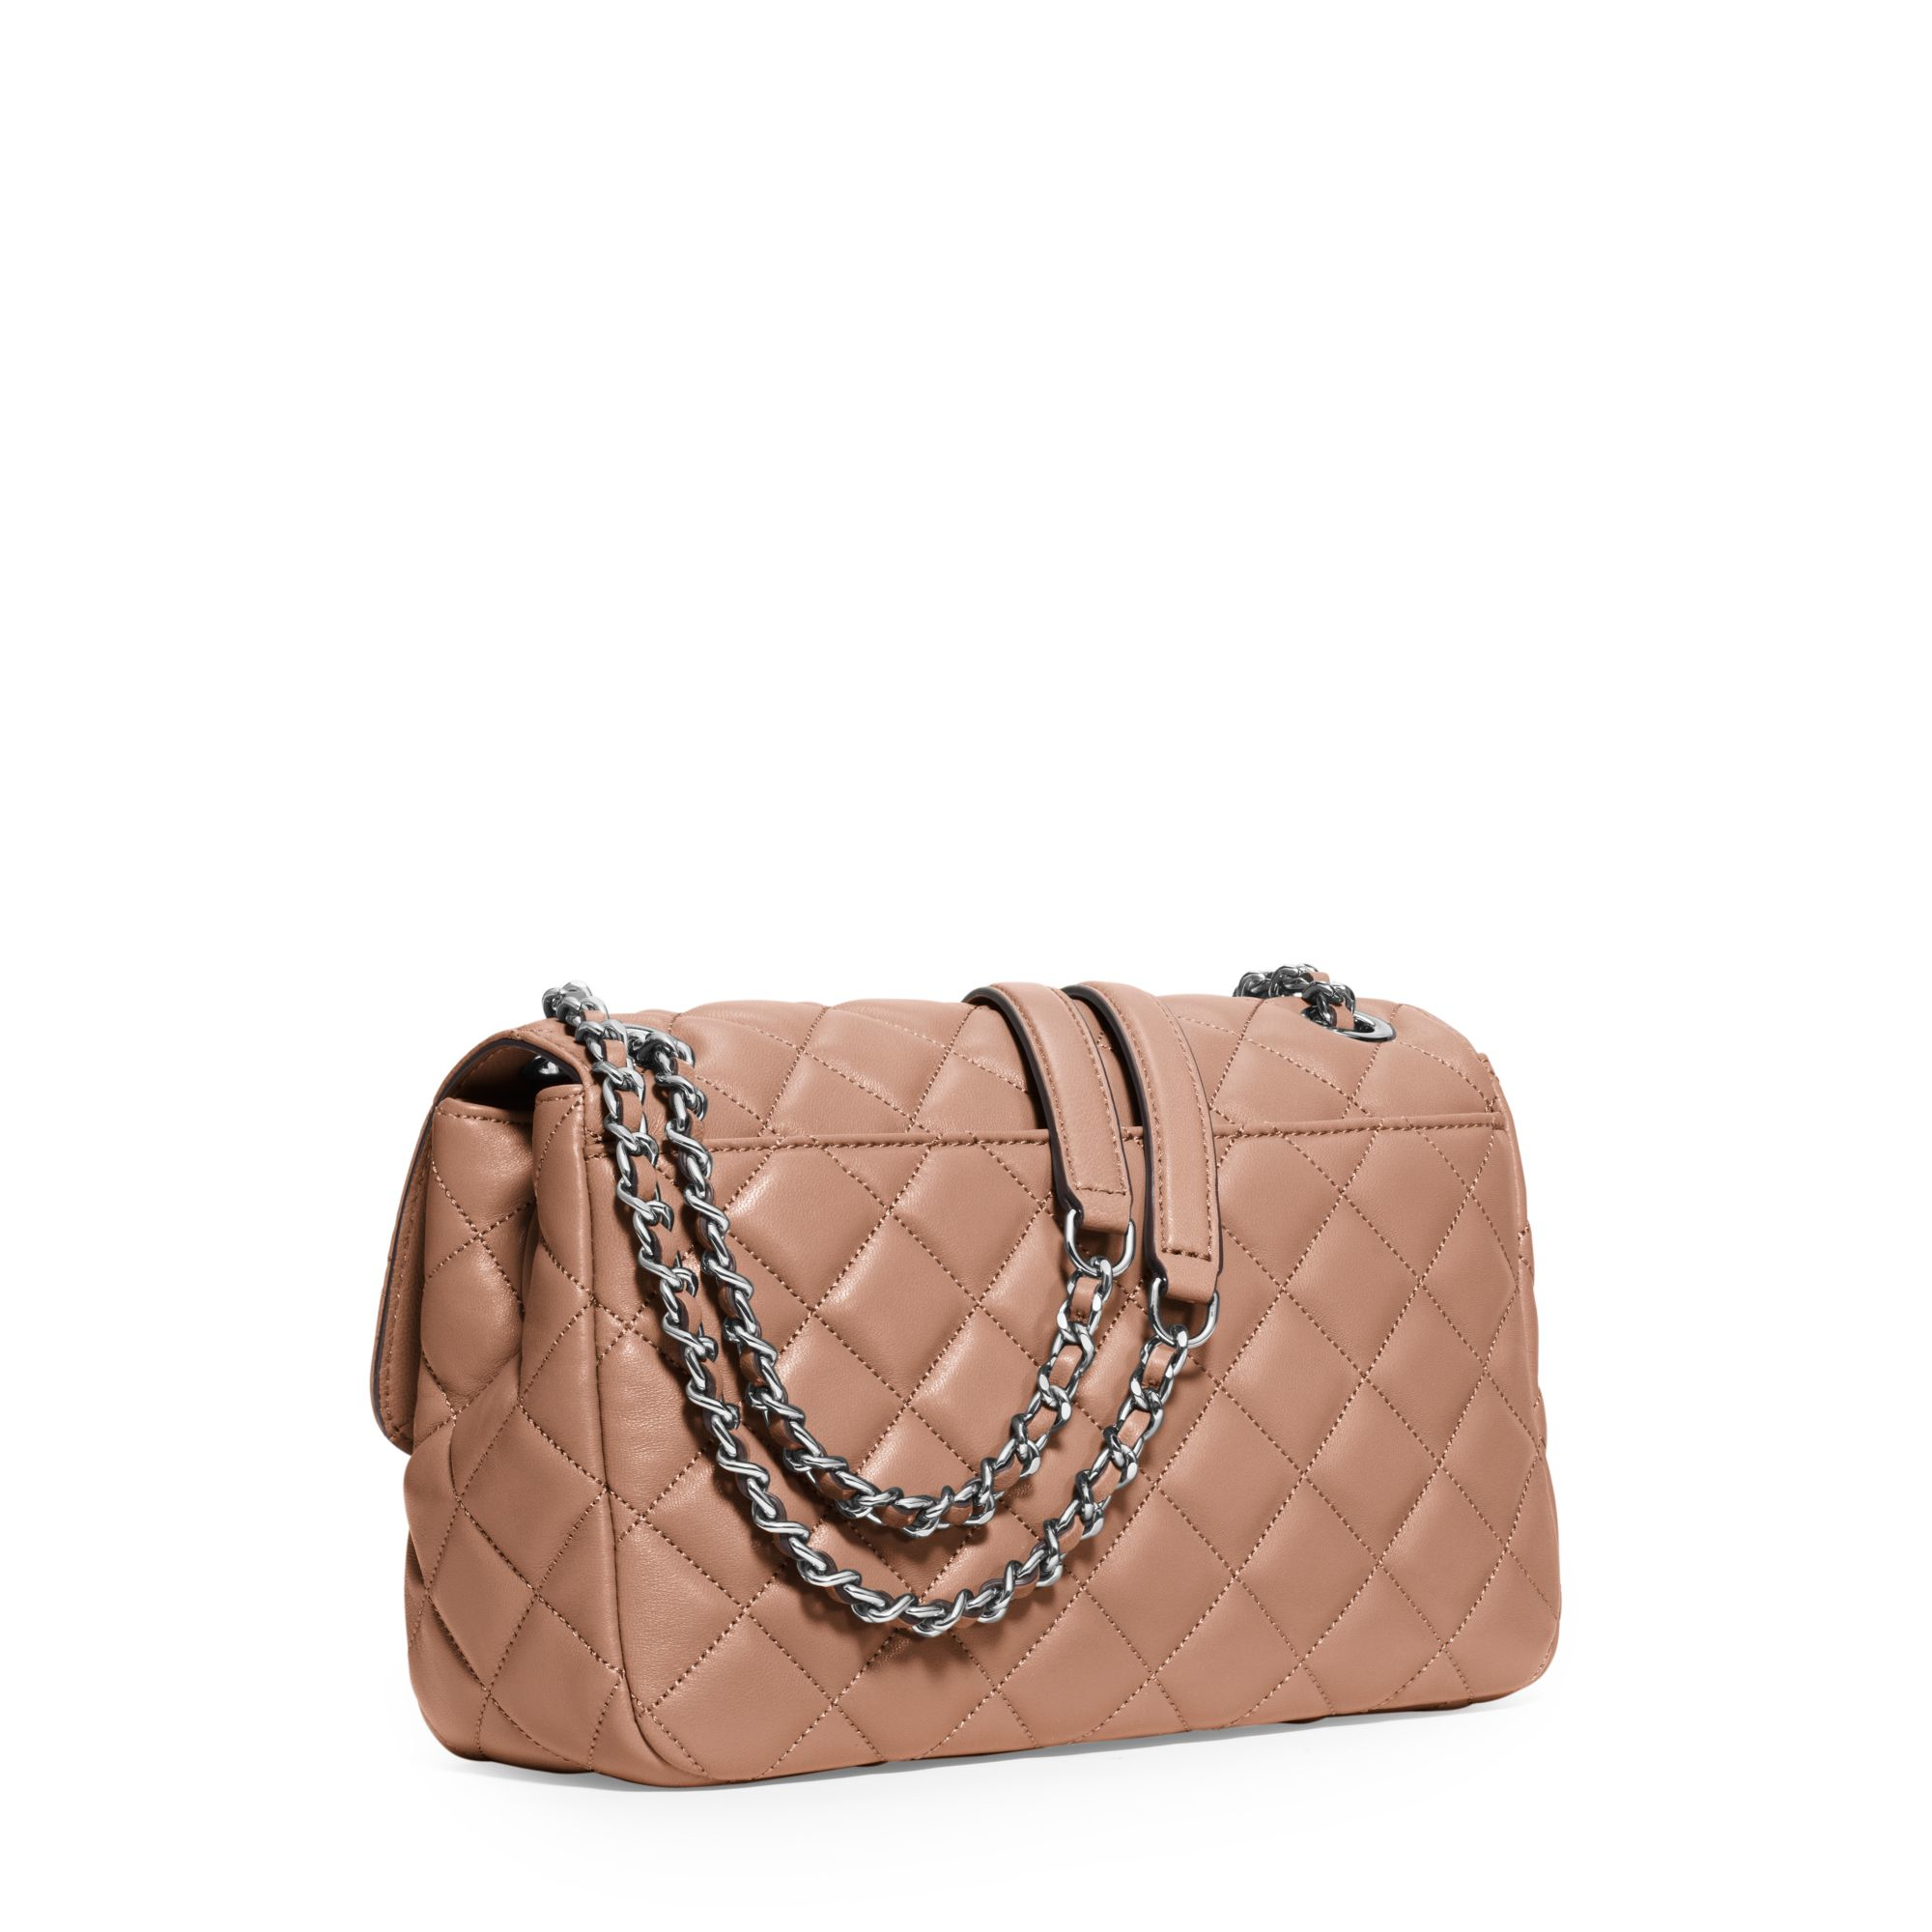 0ef5bea5f901 Michael Kors Sloan Large Quilted-leather Shoulder Bag in Pink - Lyst